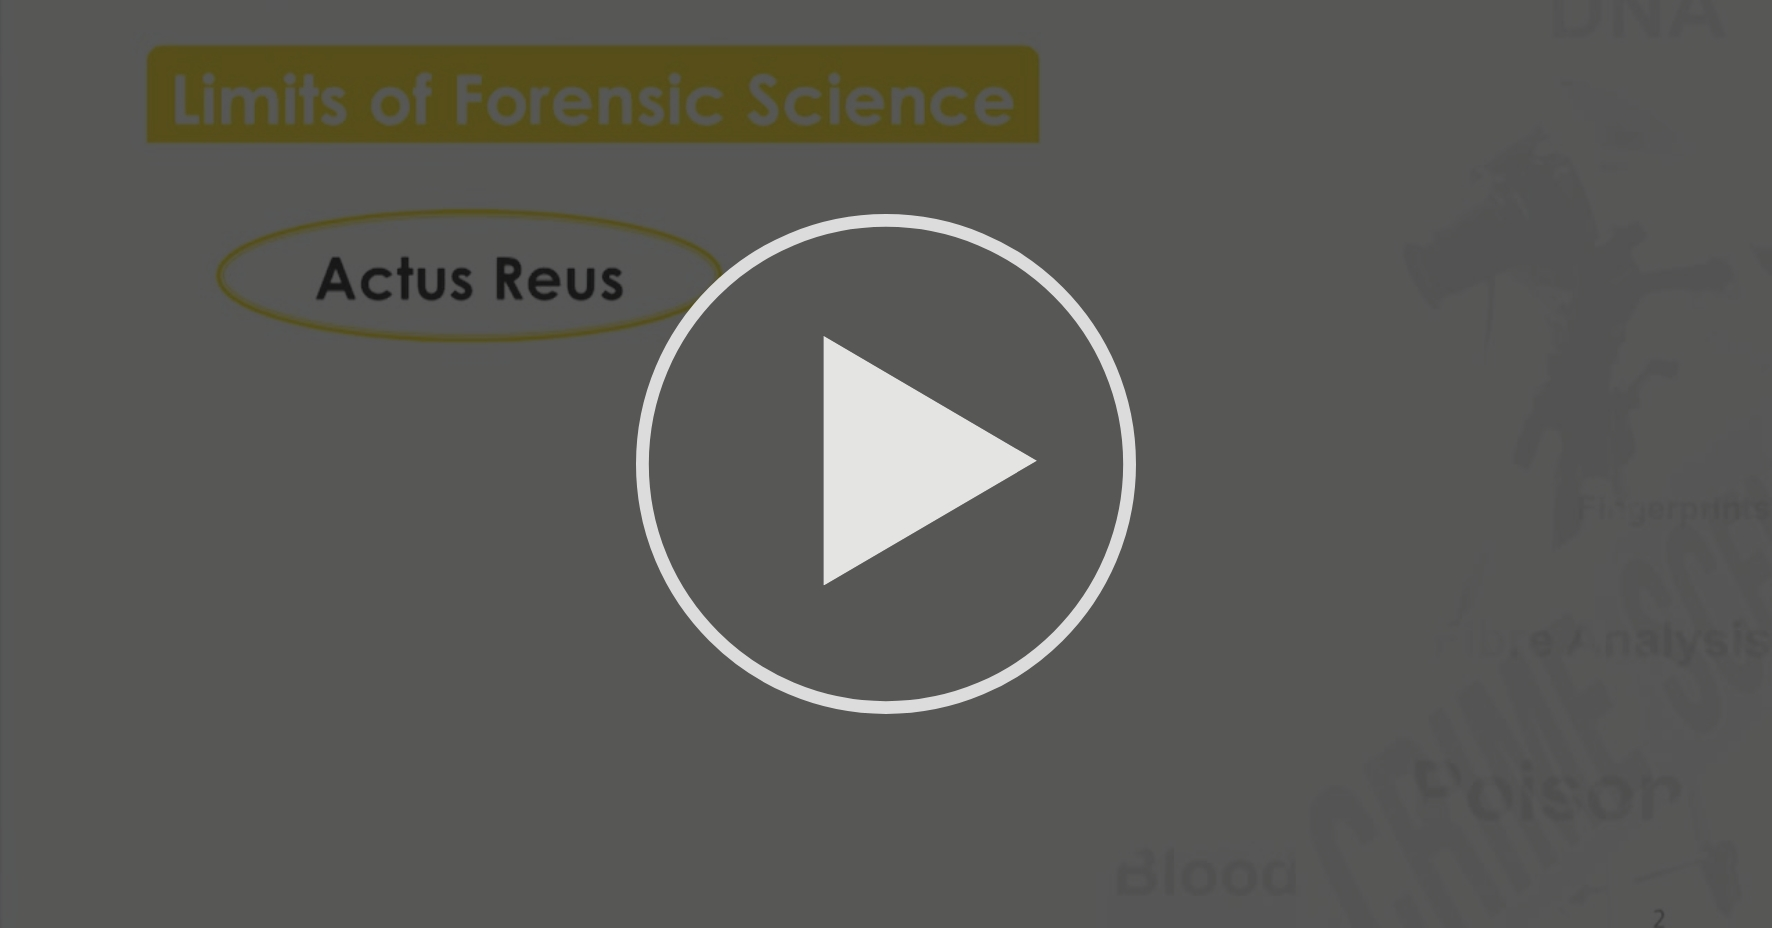 Week 1 4 Limits Of Forensic Science Introduction To Forensic Science Coursera